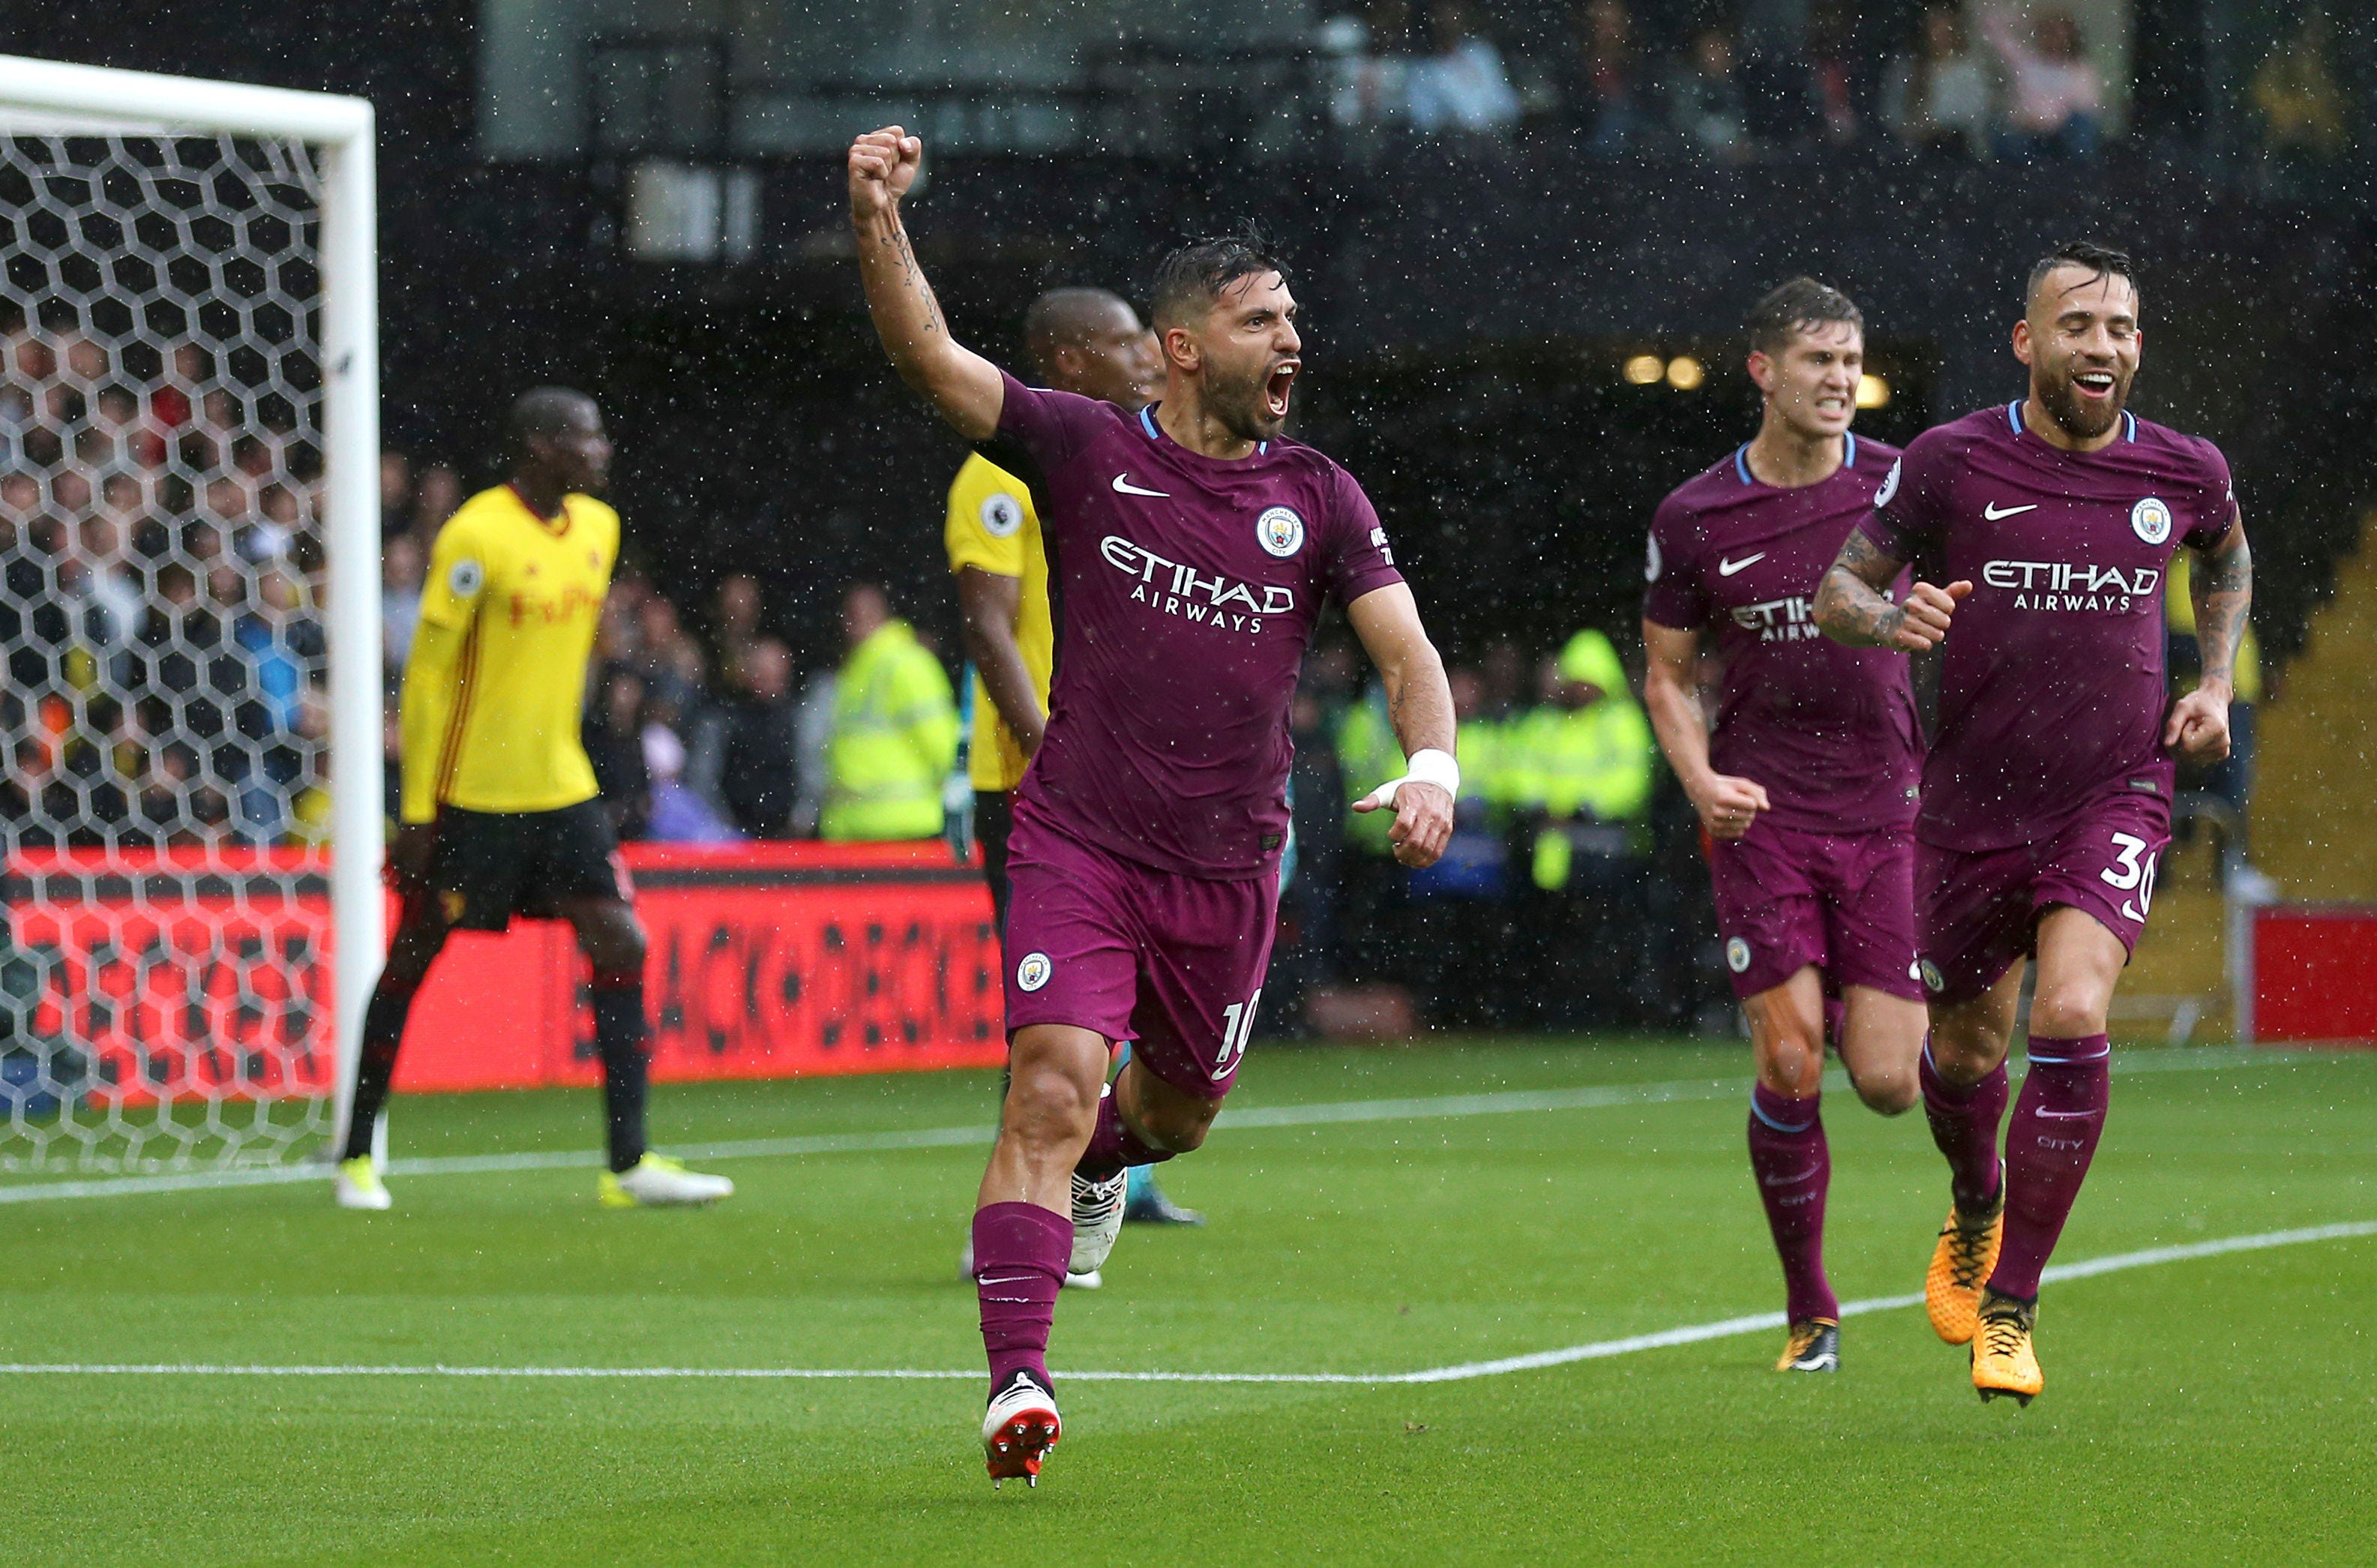 Aguero hat trick as Man City thrashes Watford 6-0 in EPL